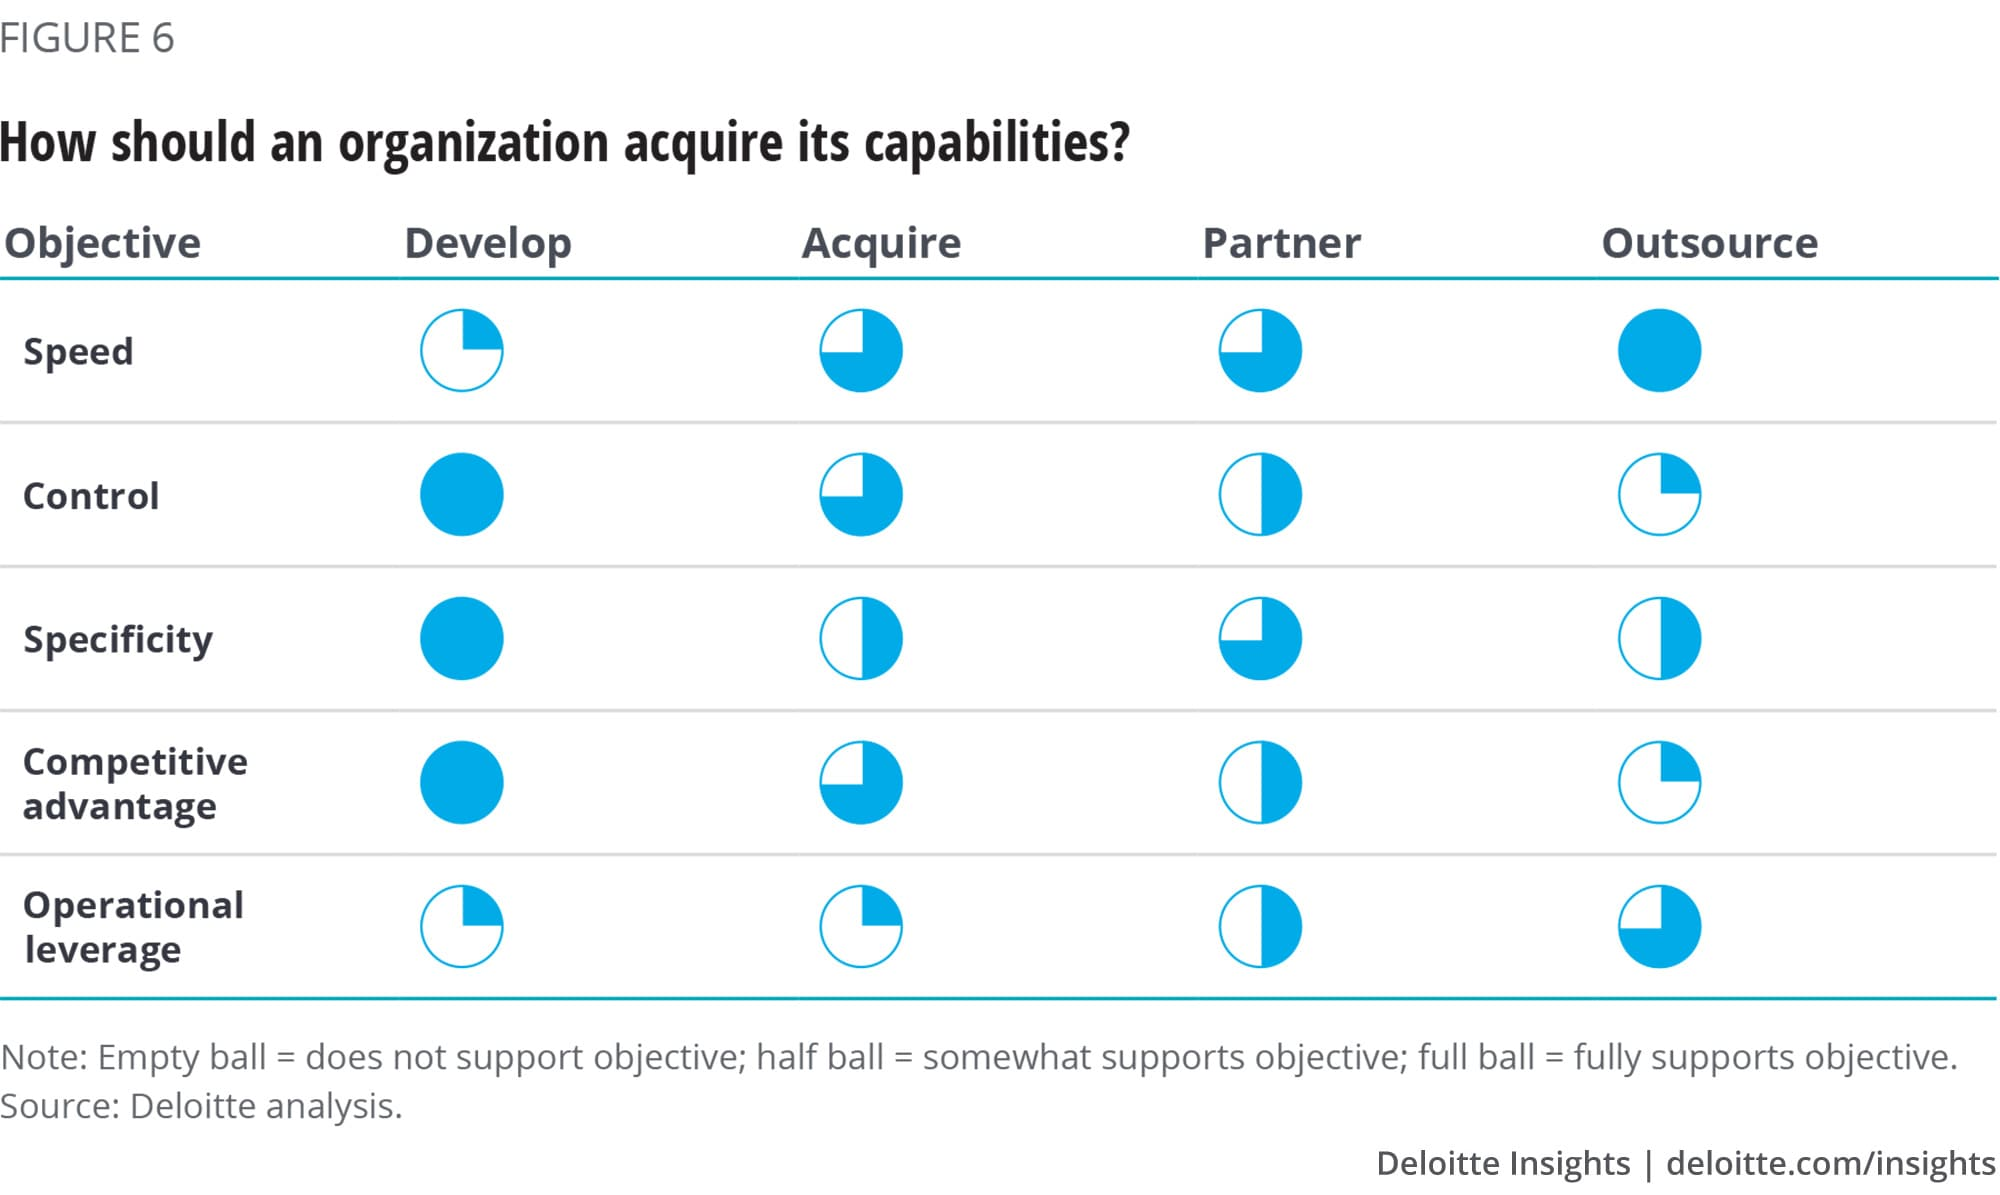 How should an organization acquire its capabilities?